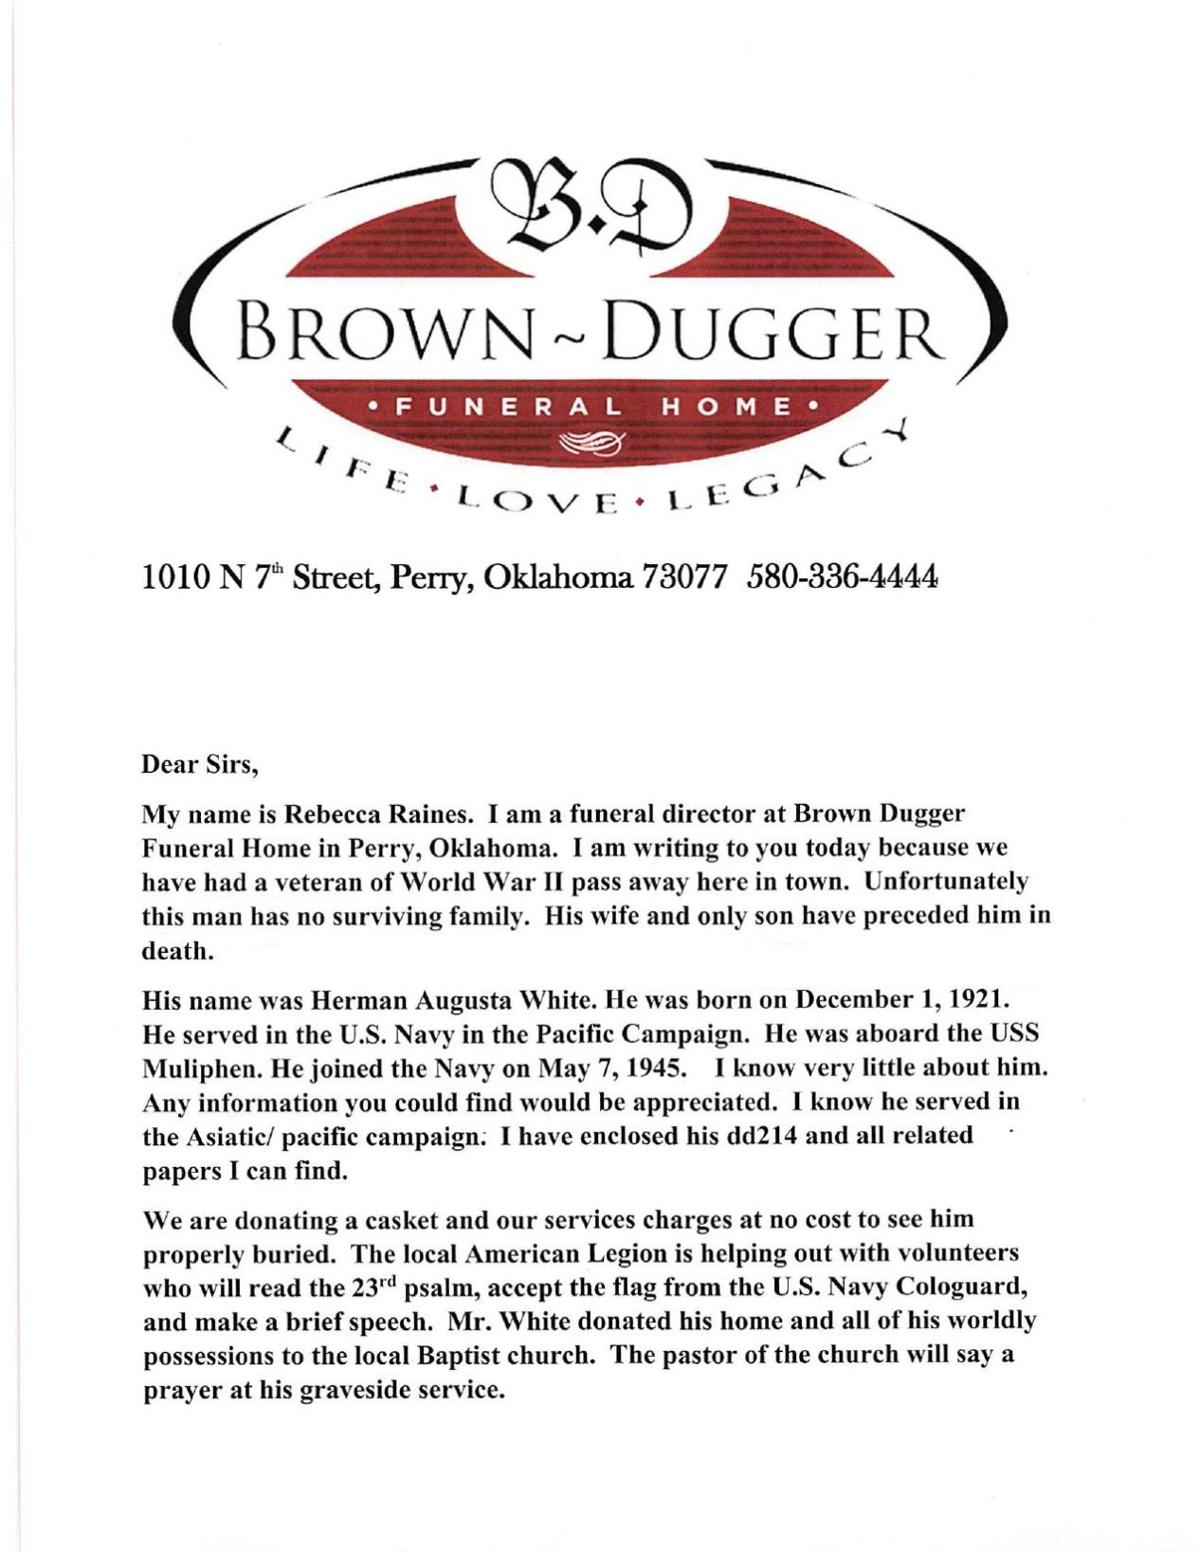 Letter from Brown-Dugger Funeral Home